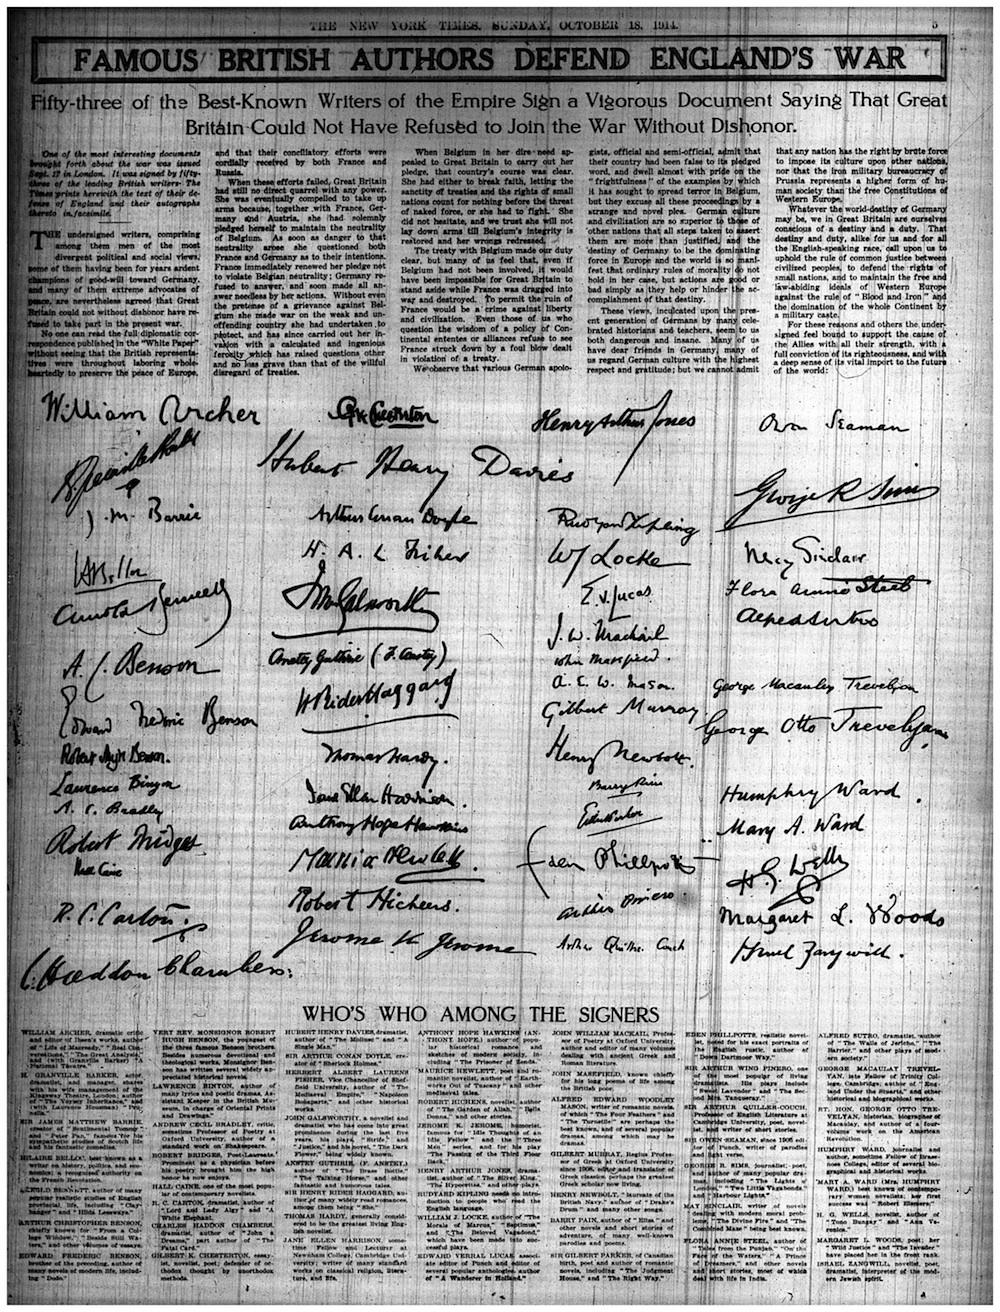 Editor. (Oct. 18, 2014). Famous British Authors Defend England's War. The New York Times.